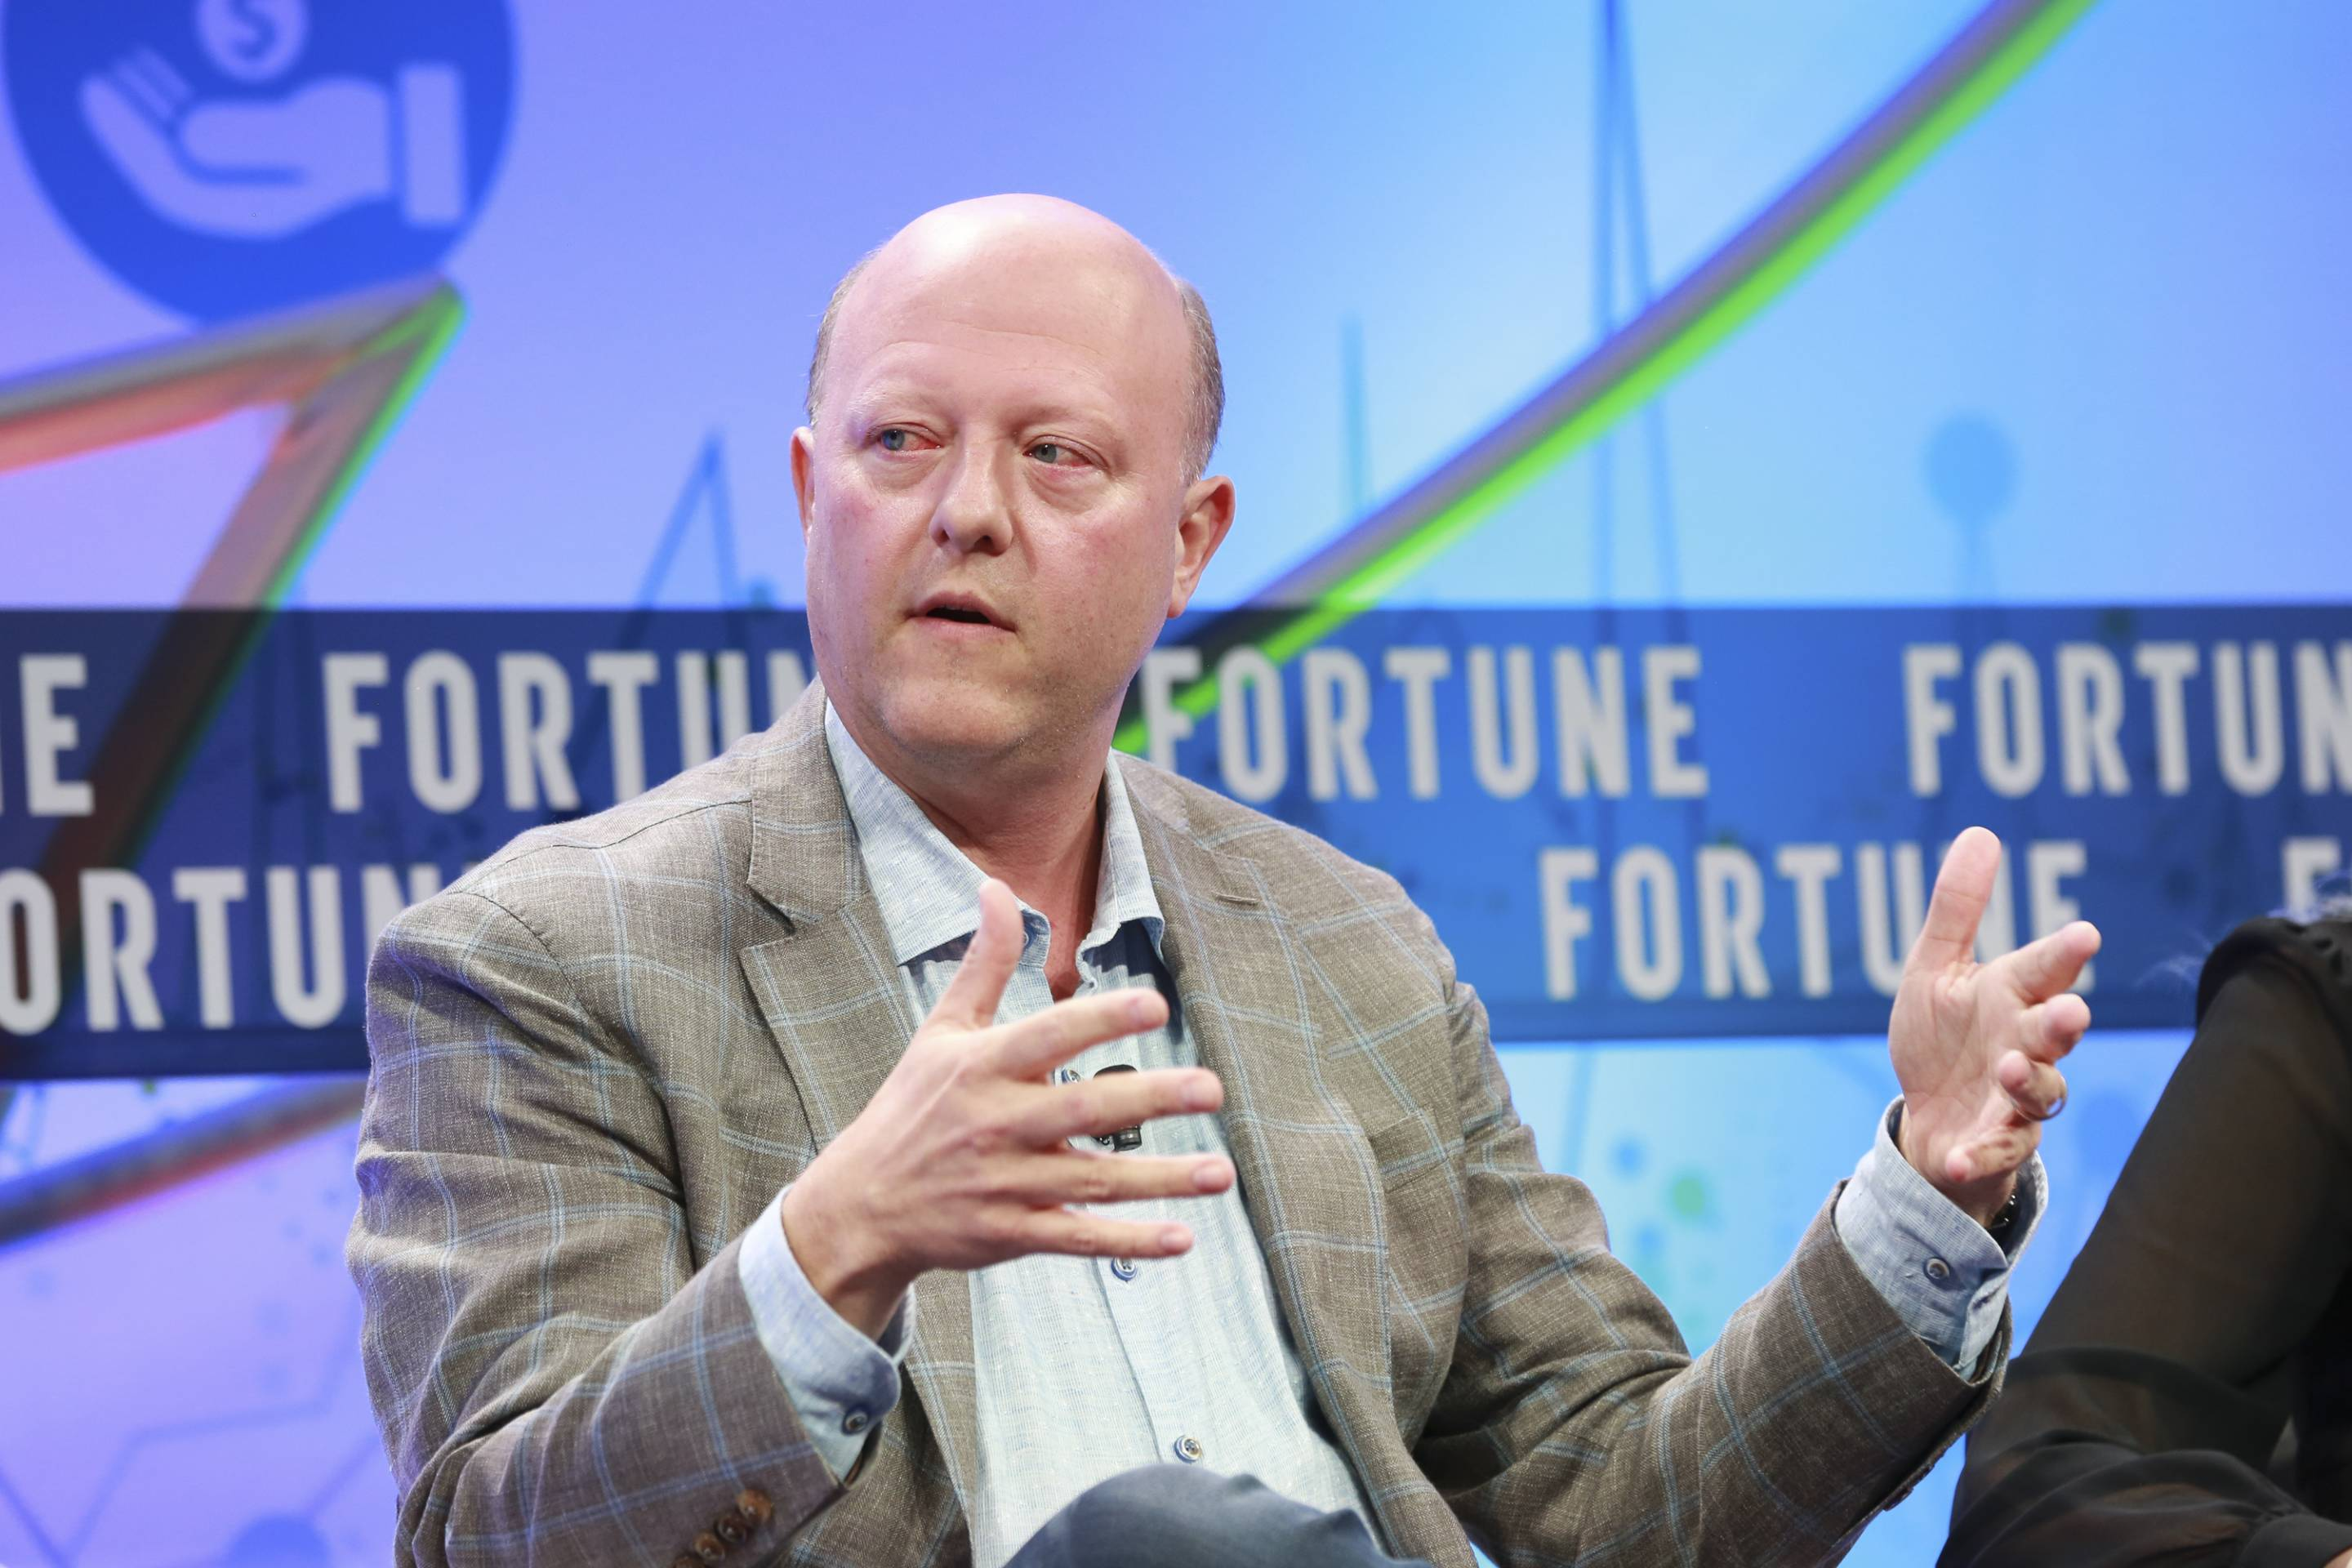 Circle CEO Jeremy Allaire at Fortune's Brainstorm Finance conference on June 19, 2019, in Montauk, N.Y.